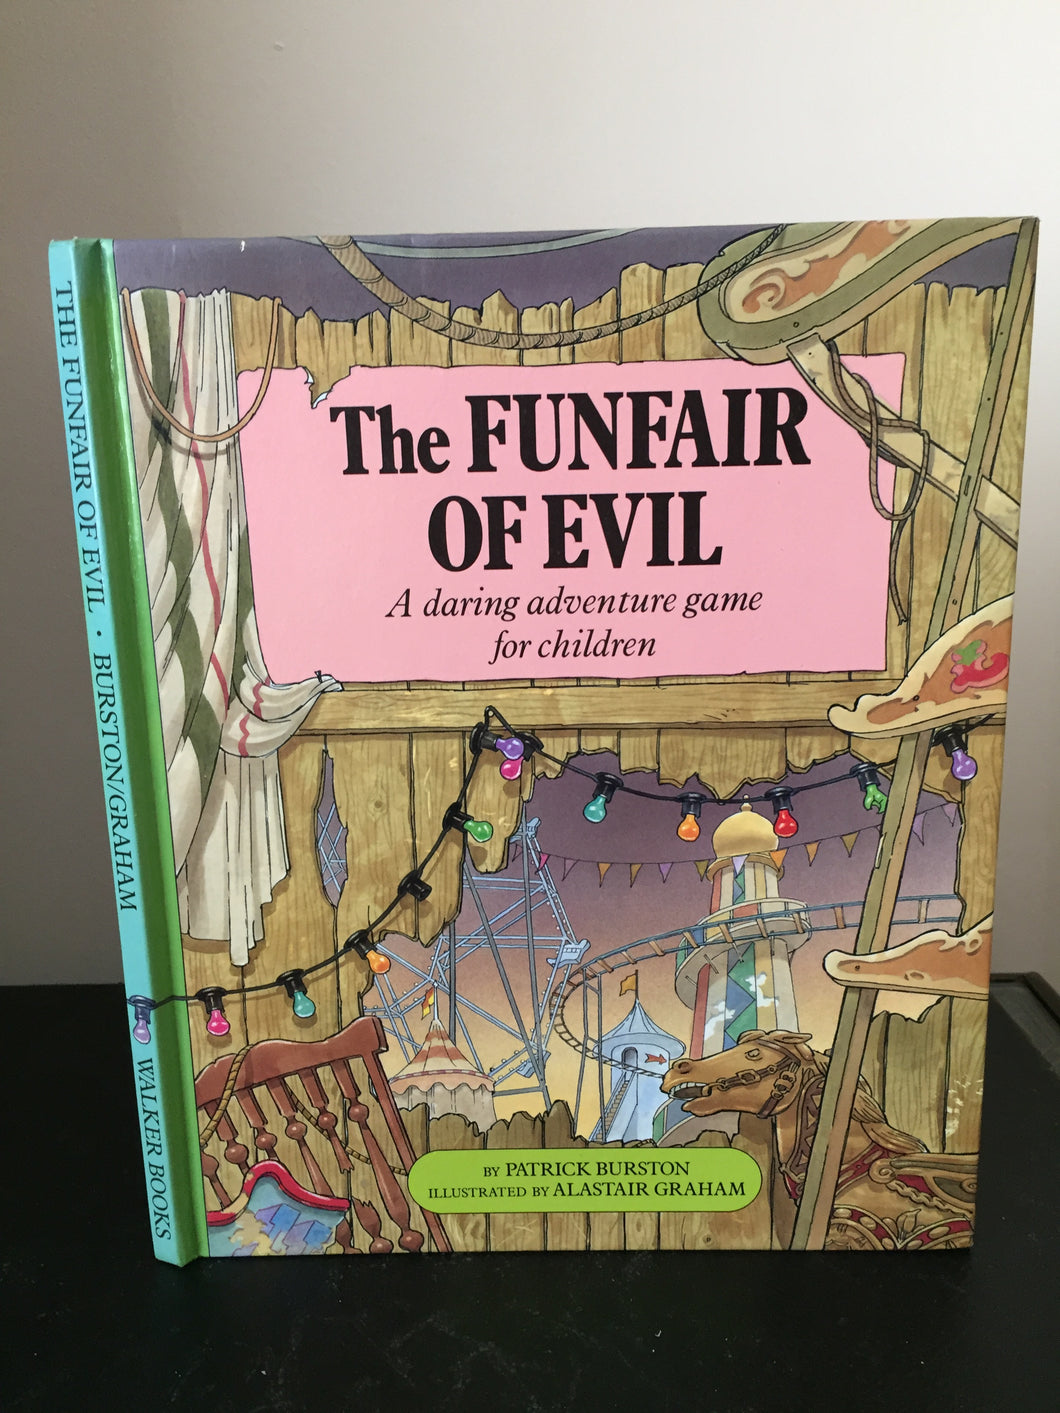 The Funfair of Evil